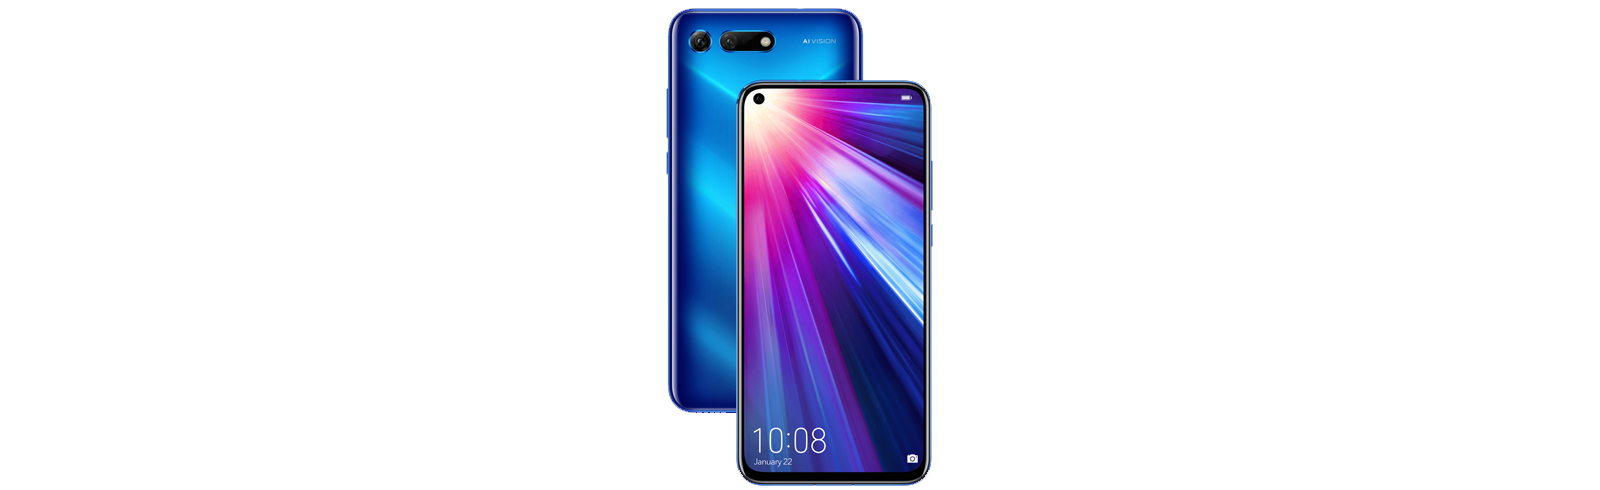 Honor View 20 goes official with a 48MP primary shooter, 6.4-inch Infinity-O display, Kirin 980